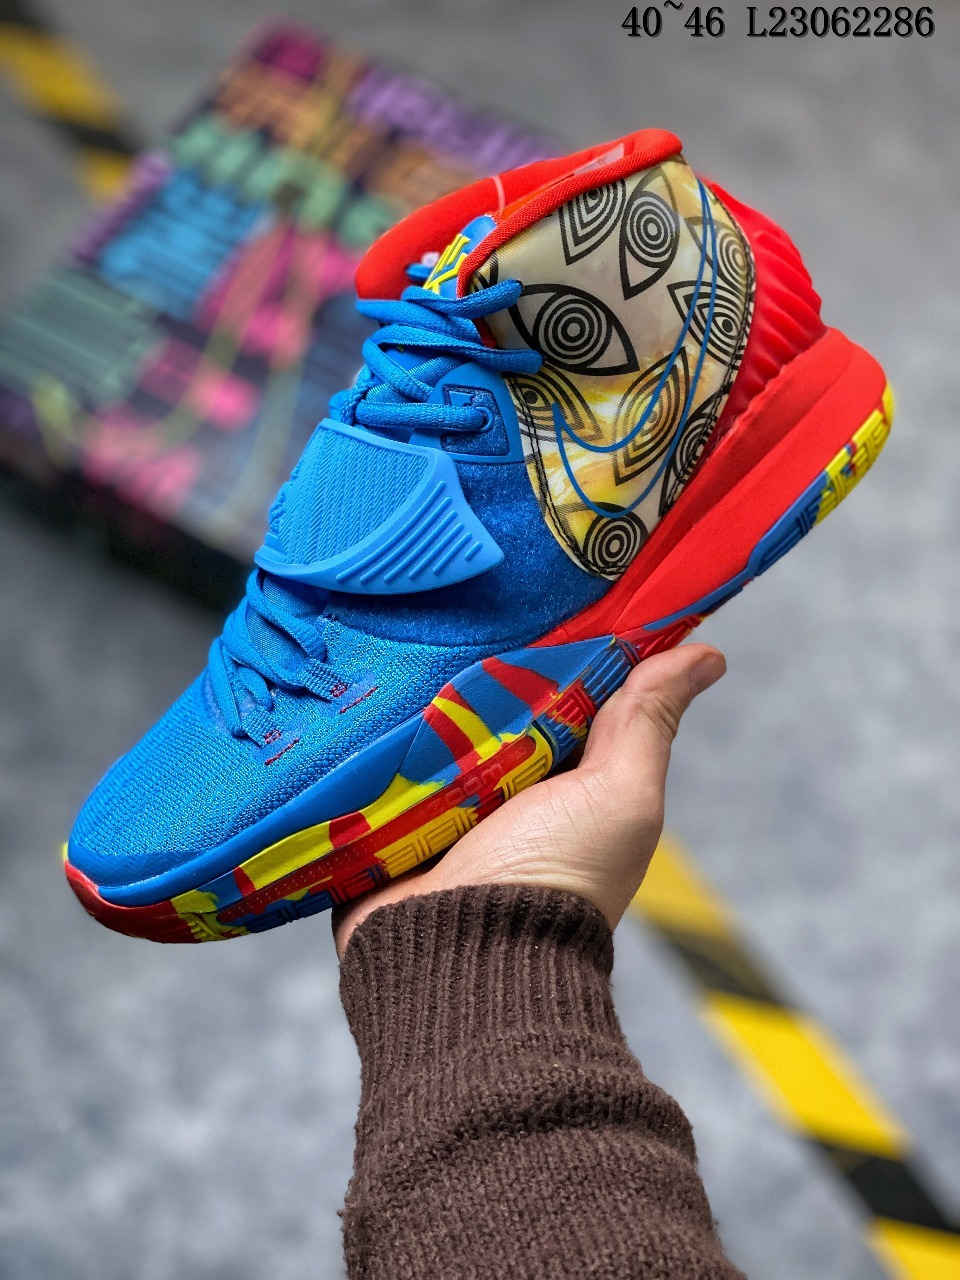 2019 Men Nike Kyrie Irving 6 City Blue Red Yellow Shoes